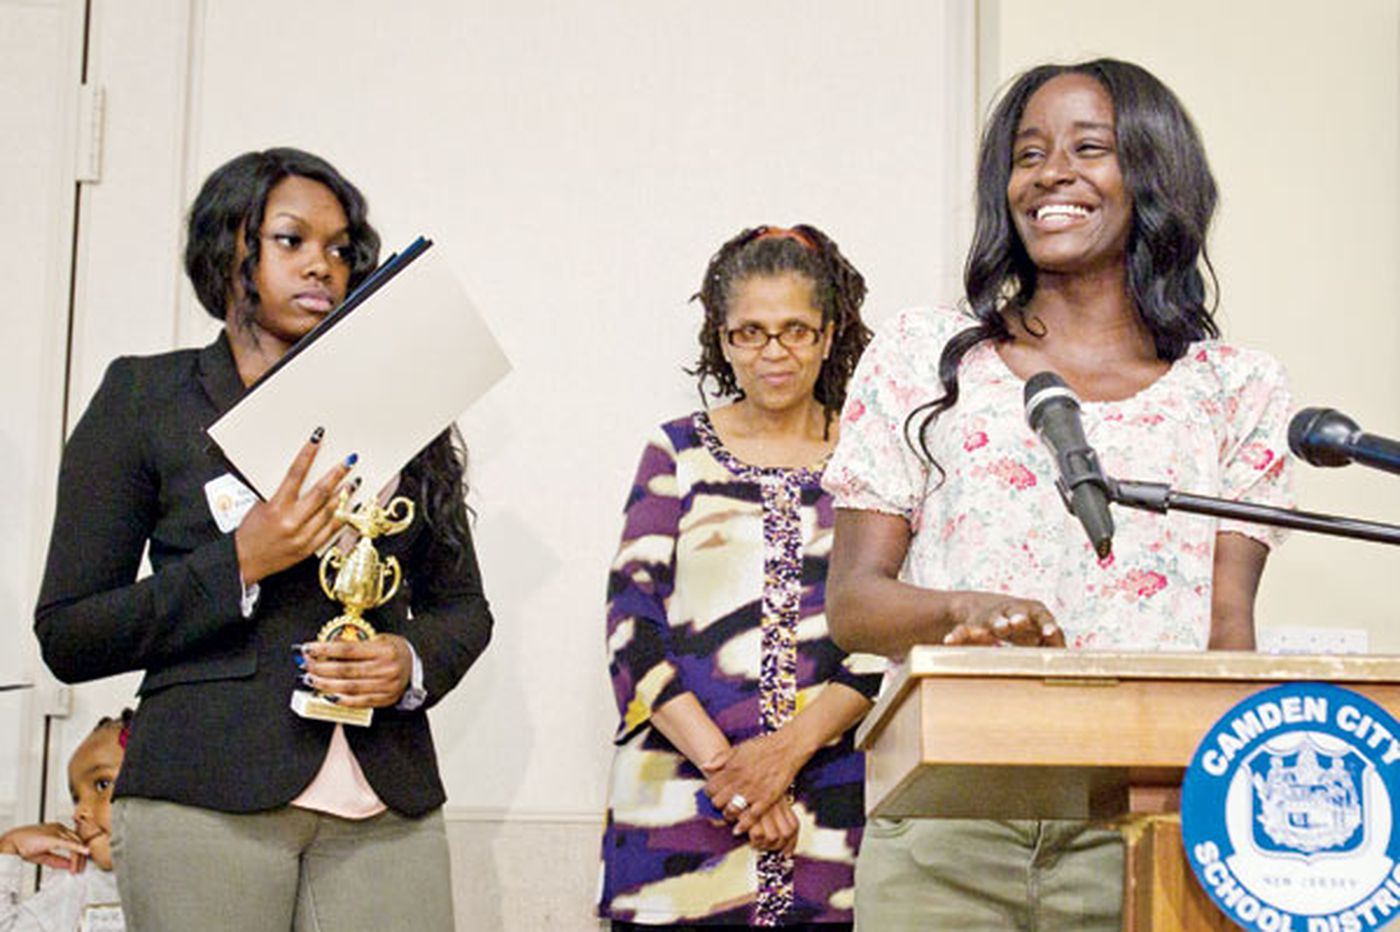 Graduating seniors in Camden who overcame are honored